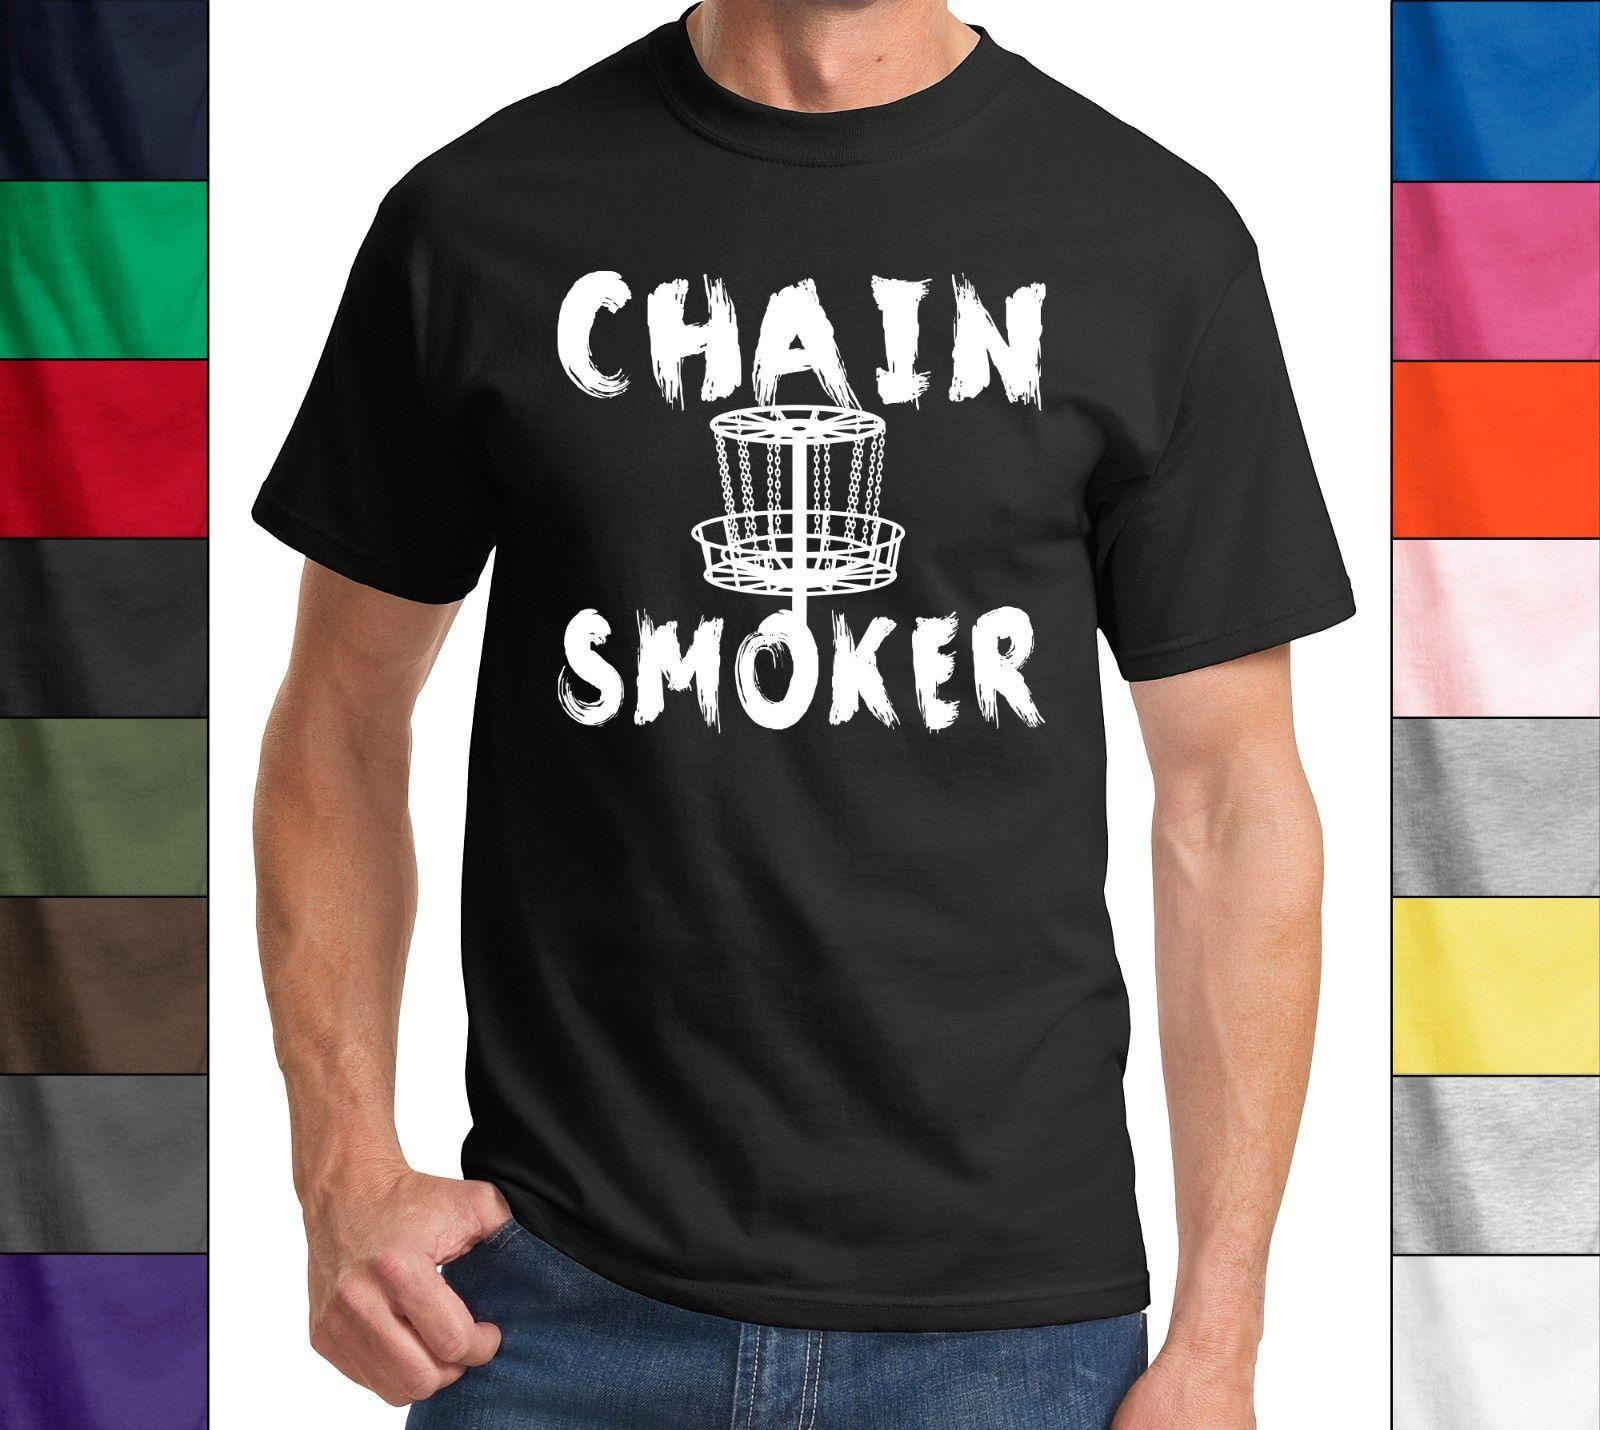 9b41a983 Chain Smoker Funny T Shirt Funny Disc Golf Frisbee Tee Smoker Sports T Shirt  Funny Unisex Casual Tee Gift T Shirts Shopping Online T Shirts Sites From  ...